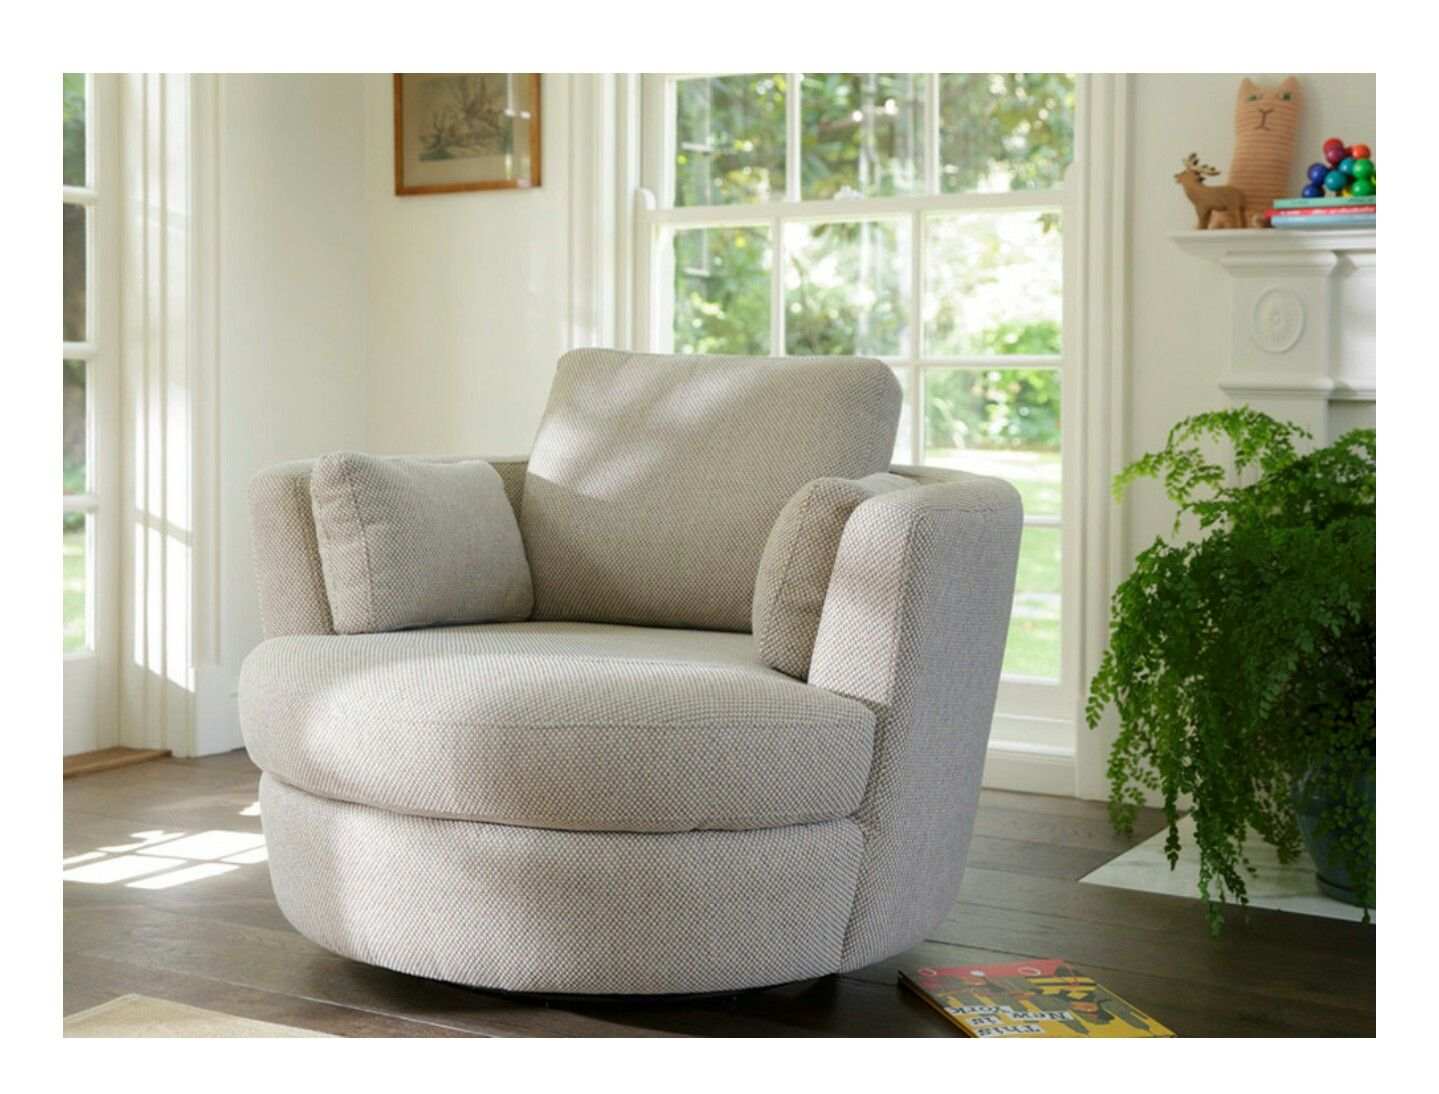 Genial Plush Swivel Chair.